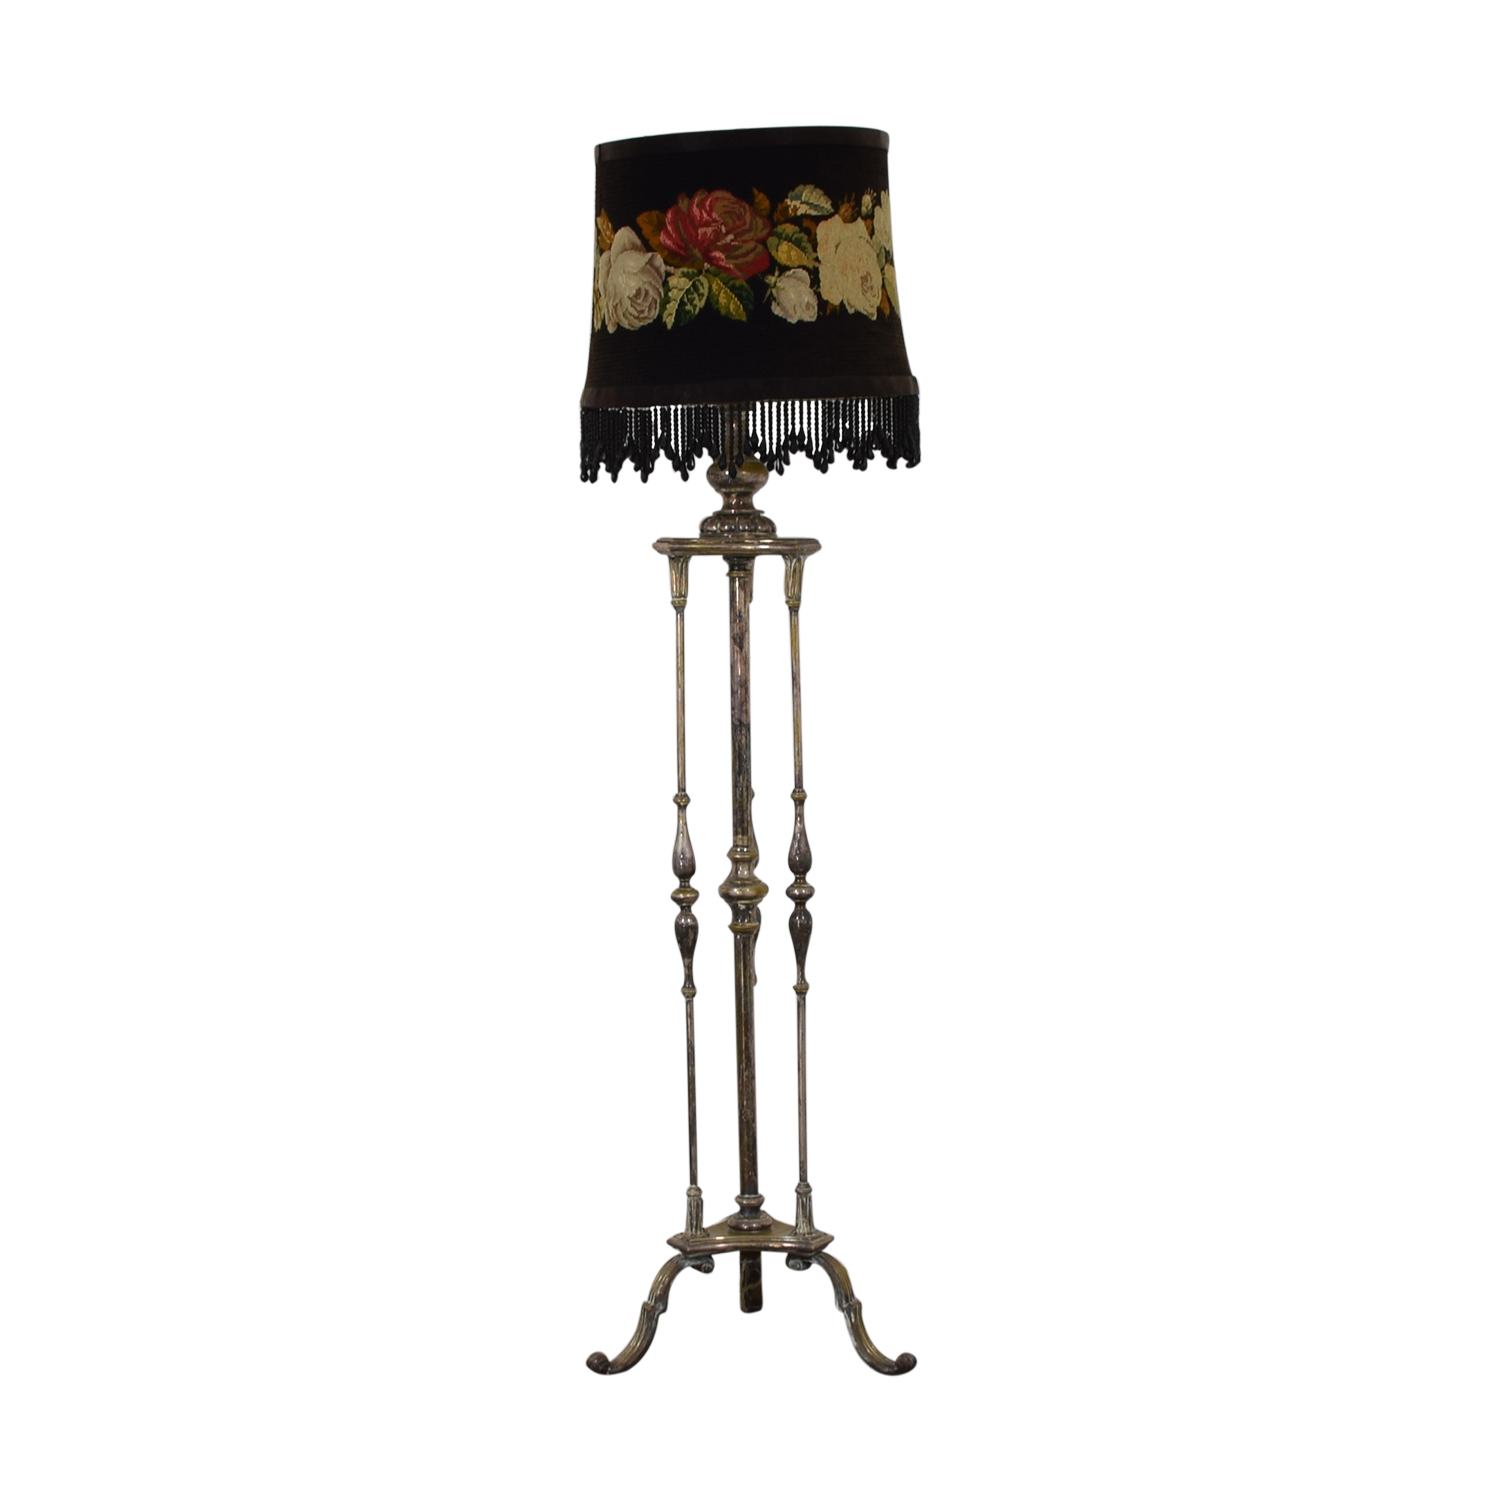 shop Antique Silver Plated Floral Needlepoint Floor Lamp  Decor